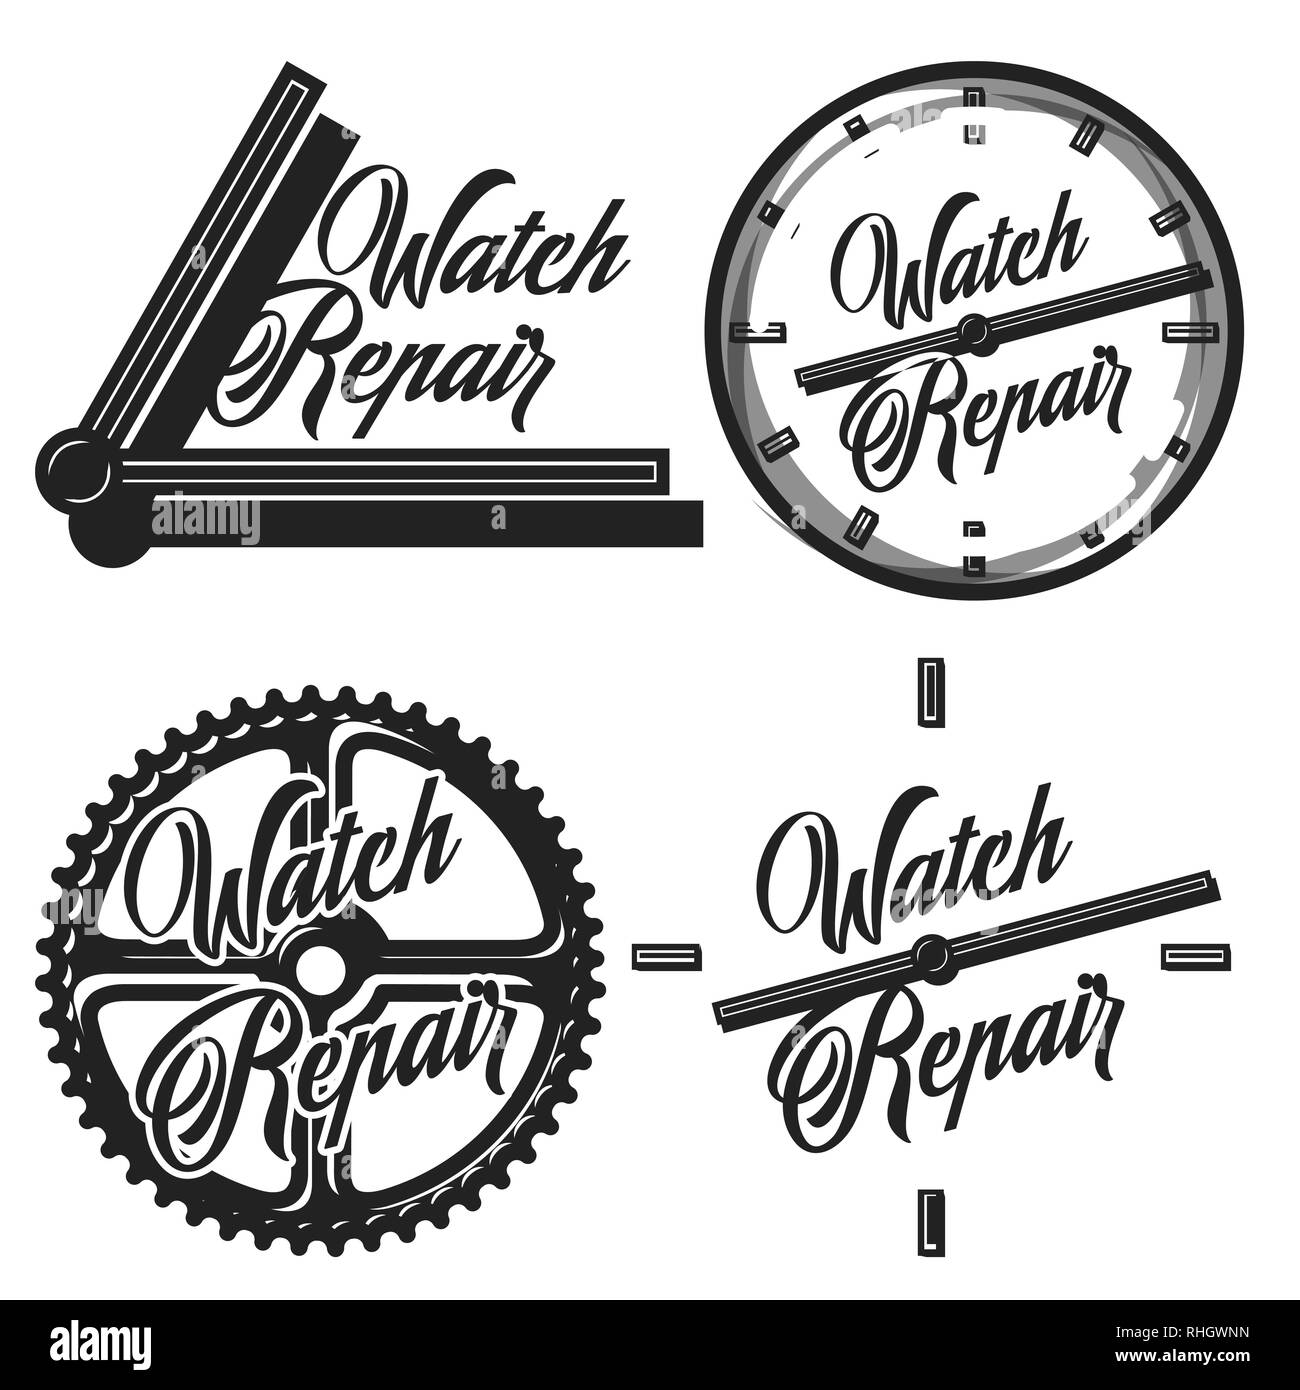 Color vintage watch repair emblems, labels, badges and design elements. Vector illustration, EPS 10 - Stock Image